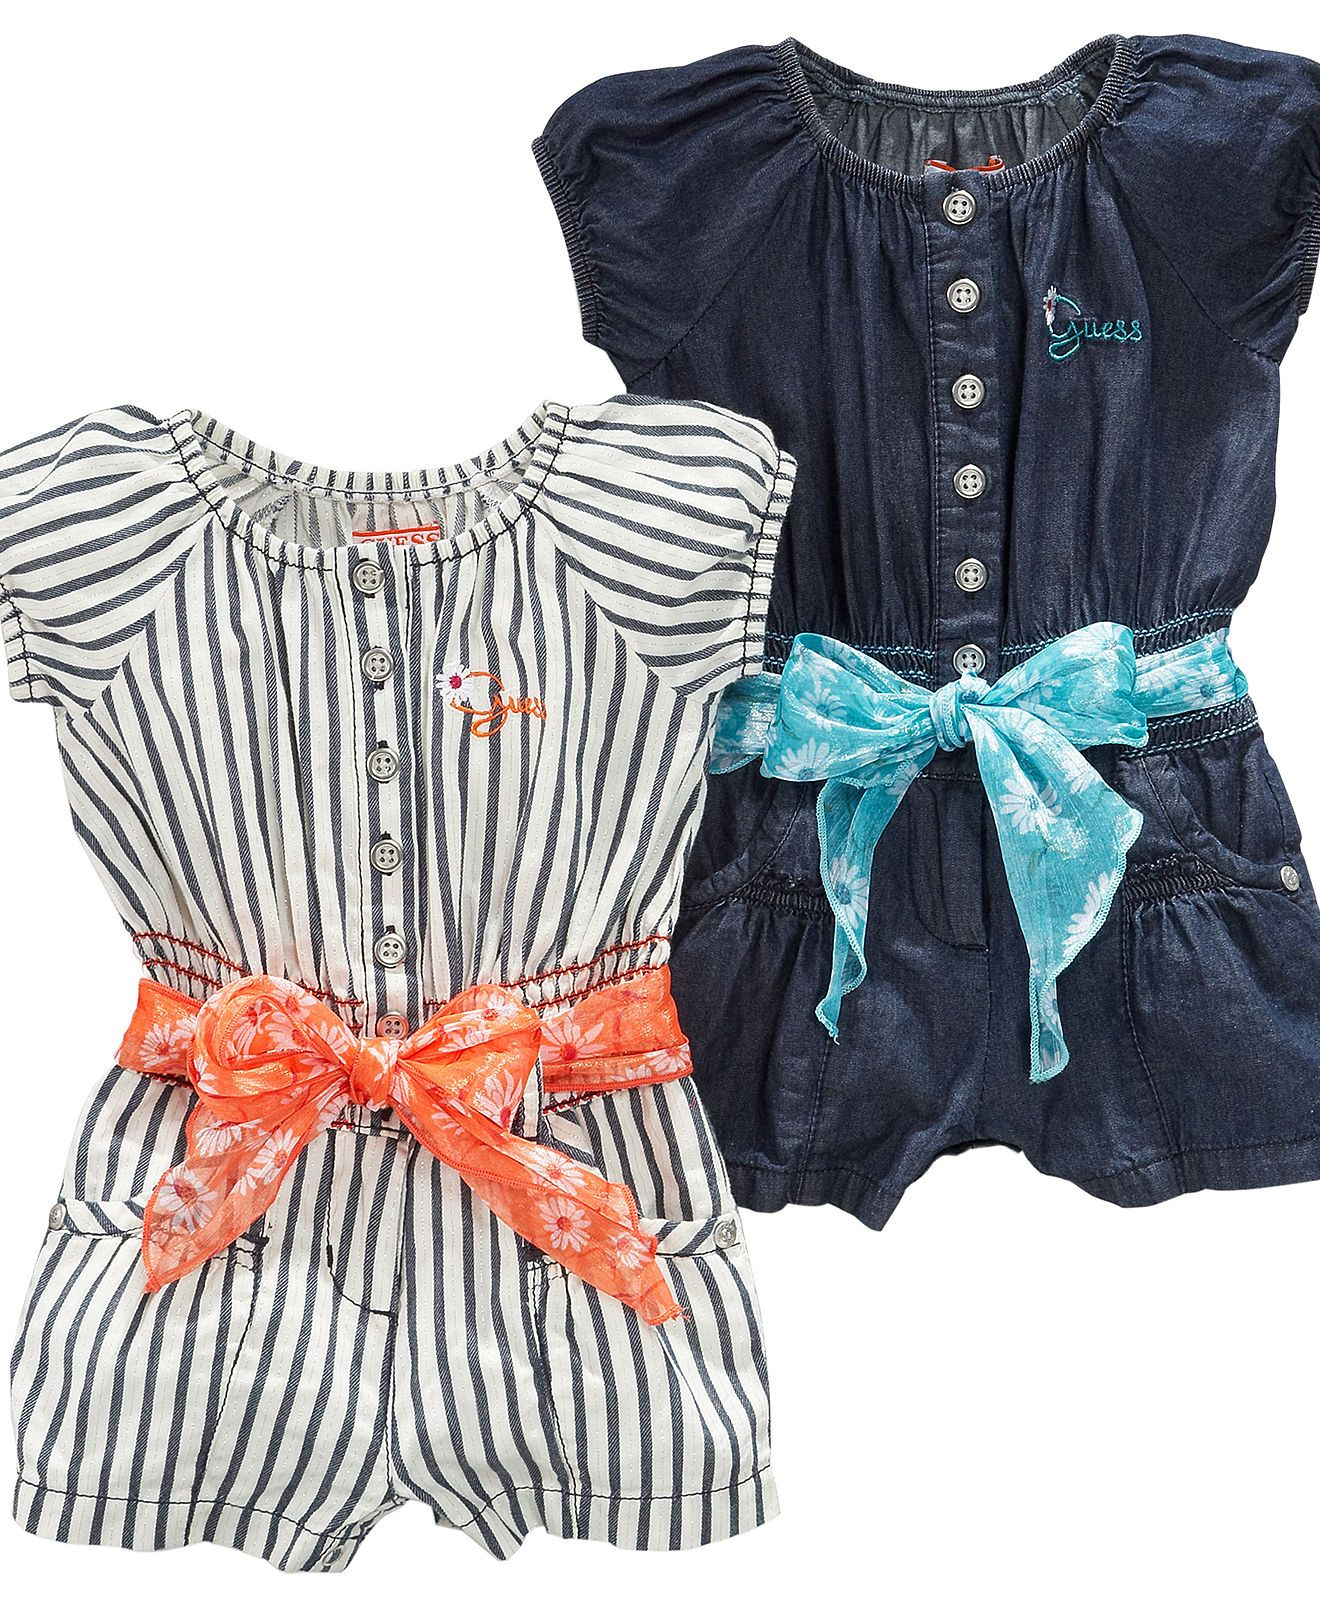 Cute Guess baby rompers Outfit ideas for my girls